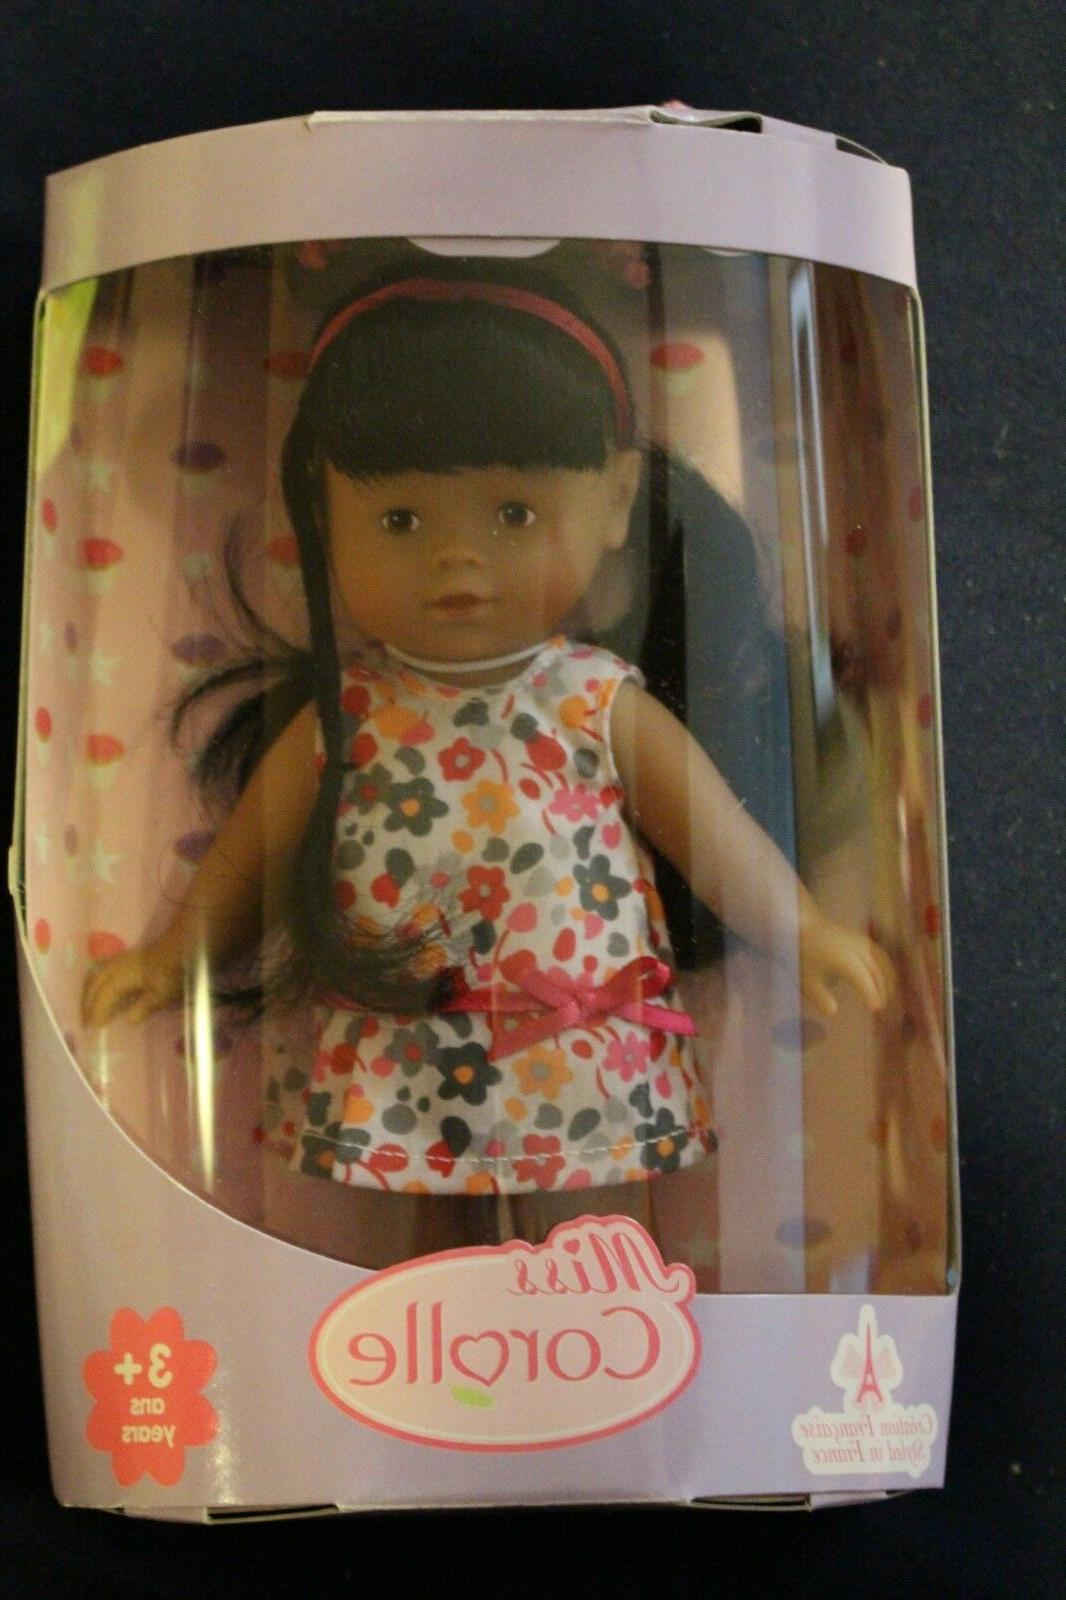 miss 8 inch baby doll with flower